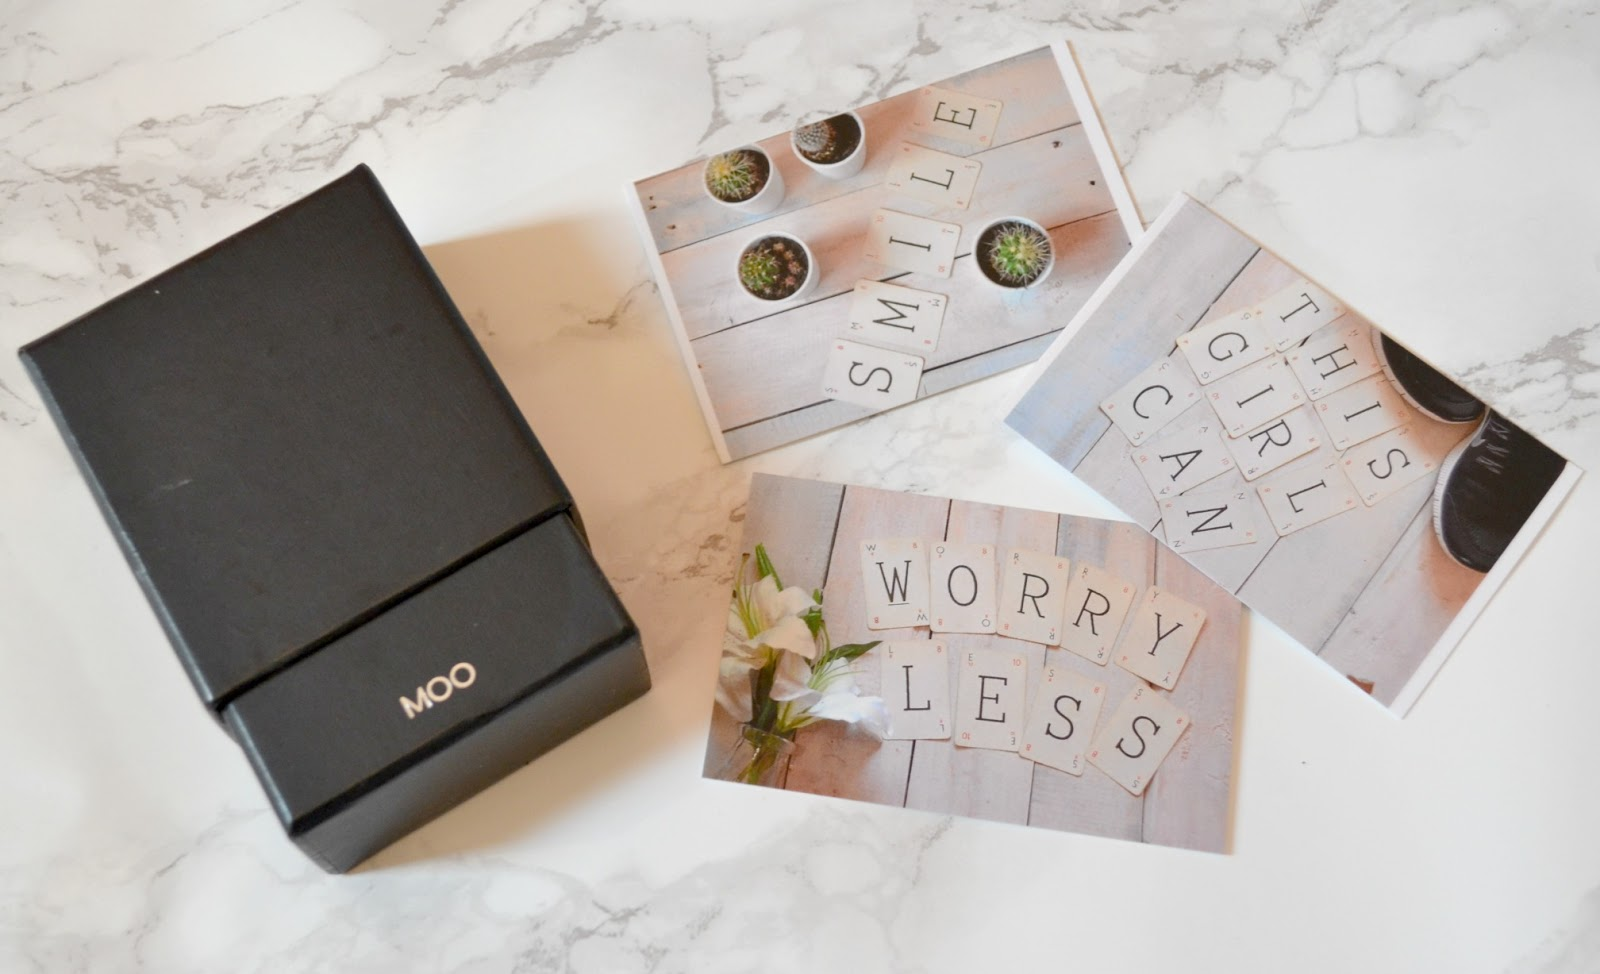 Free business cards moo review uk lifestyle and beauty blog these came in a handy box thanks moo i ordered matte cards with a square edge but there is the option for a gloss finish they arrived in the post after reheart Images